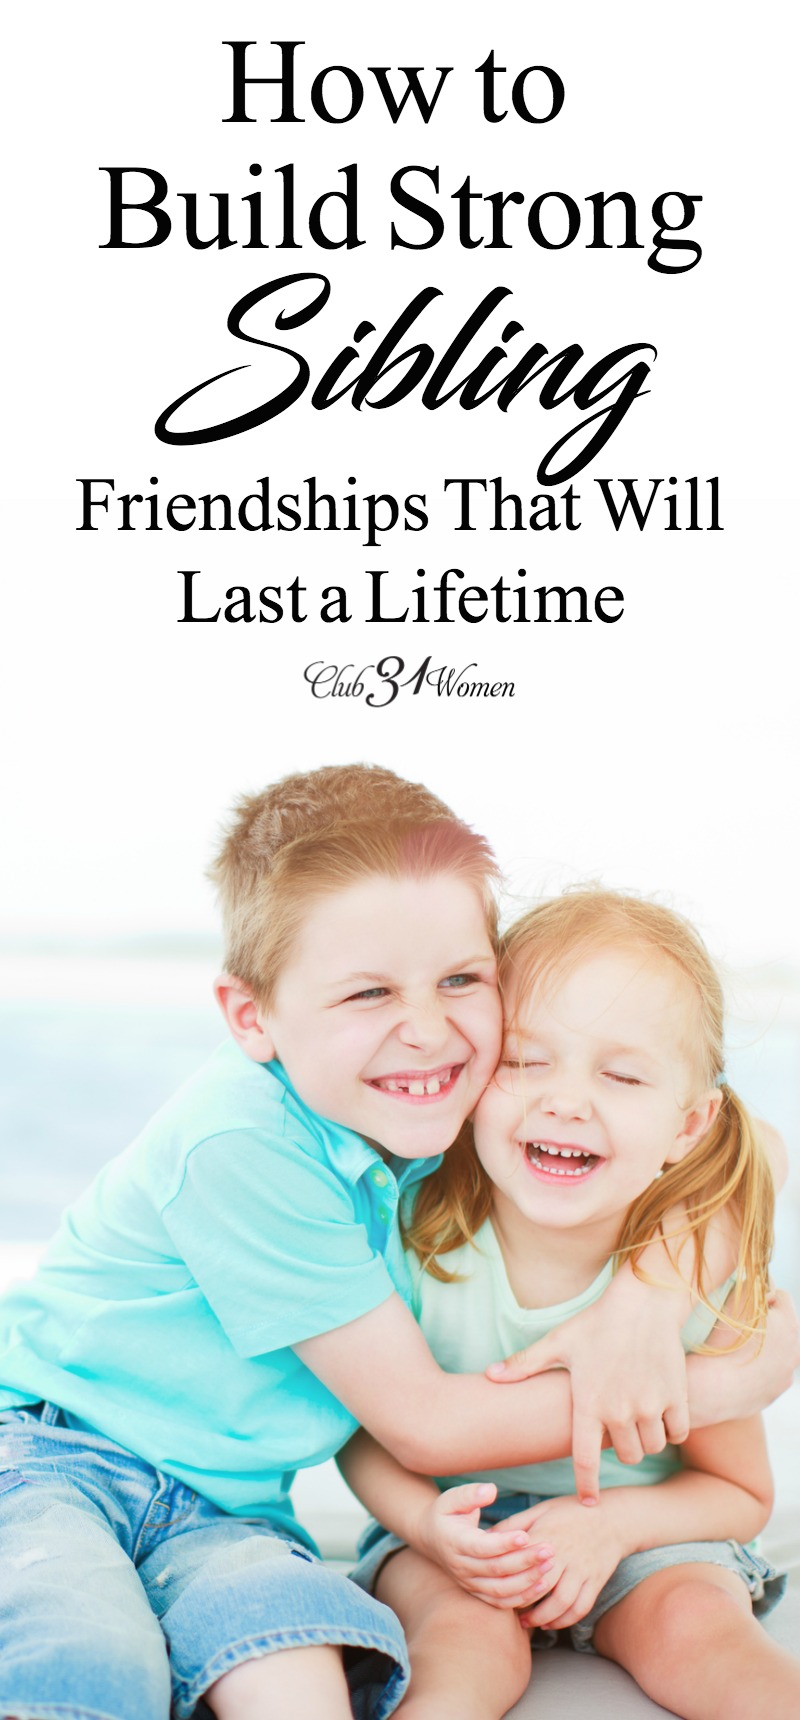 How can we cultivate sibling friendships in our children as they begin learning about conflicting desires? Here are some great ways to begin when they are young. via @Club31Women